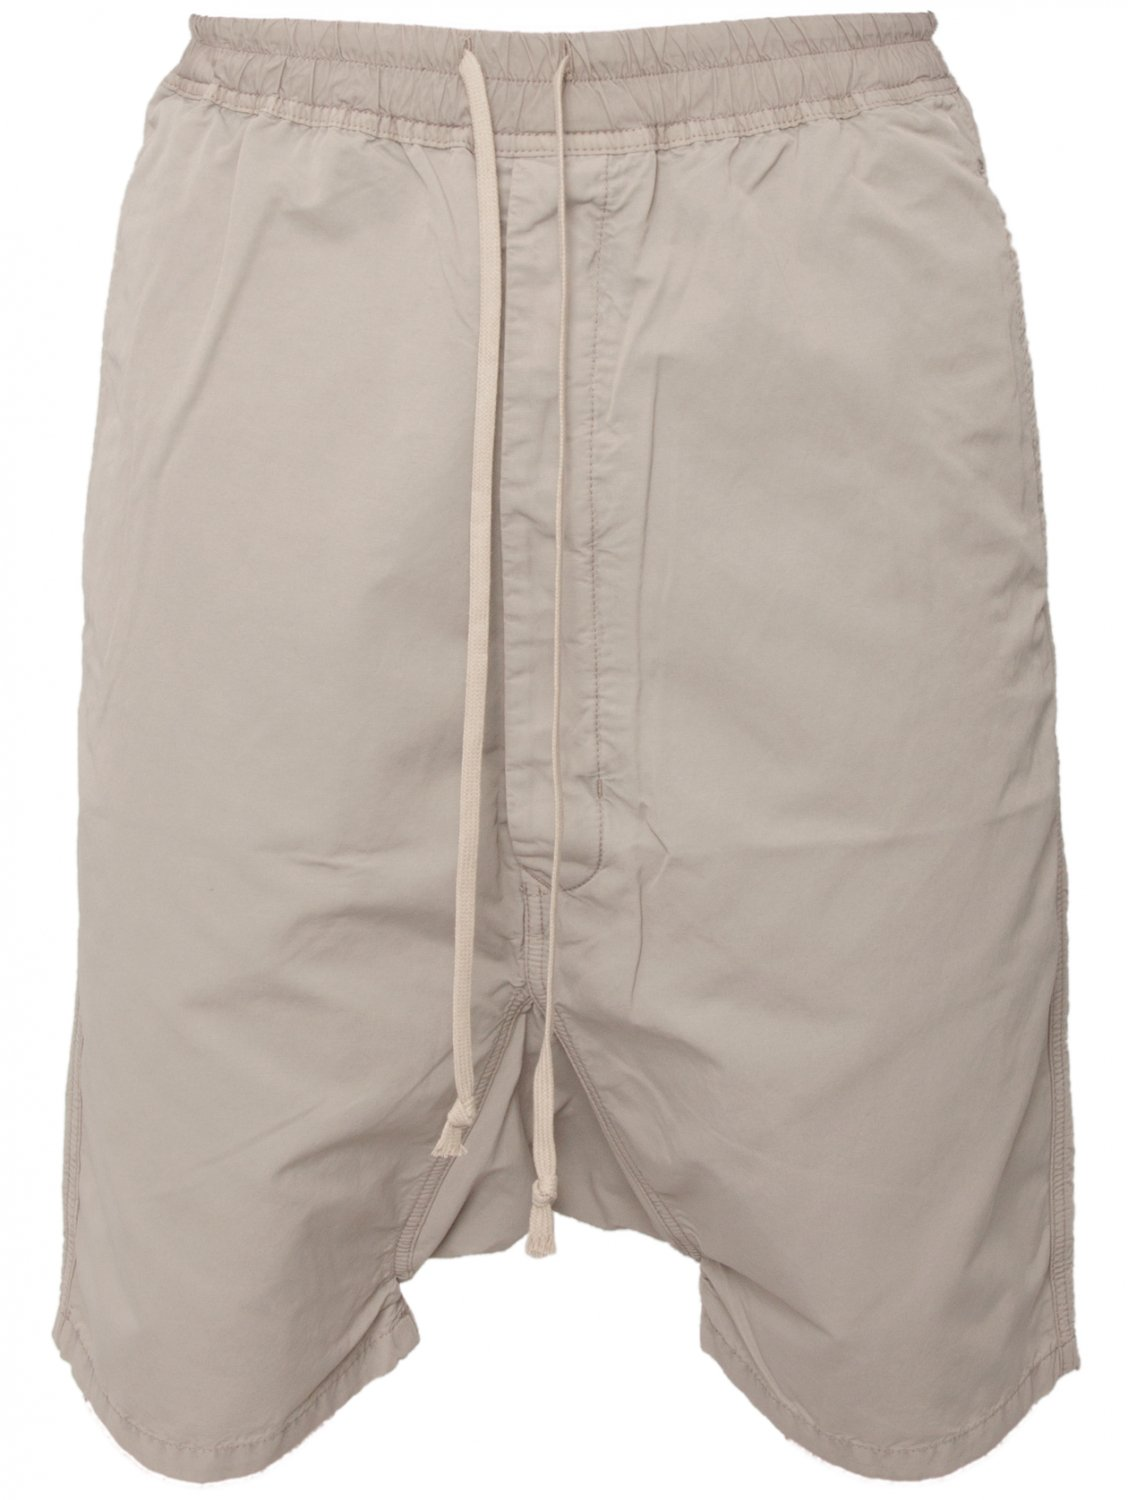 drawstring shorts - White Rick Owens